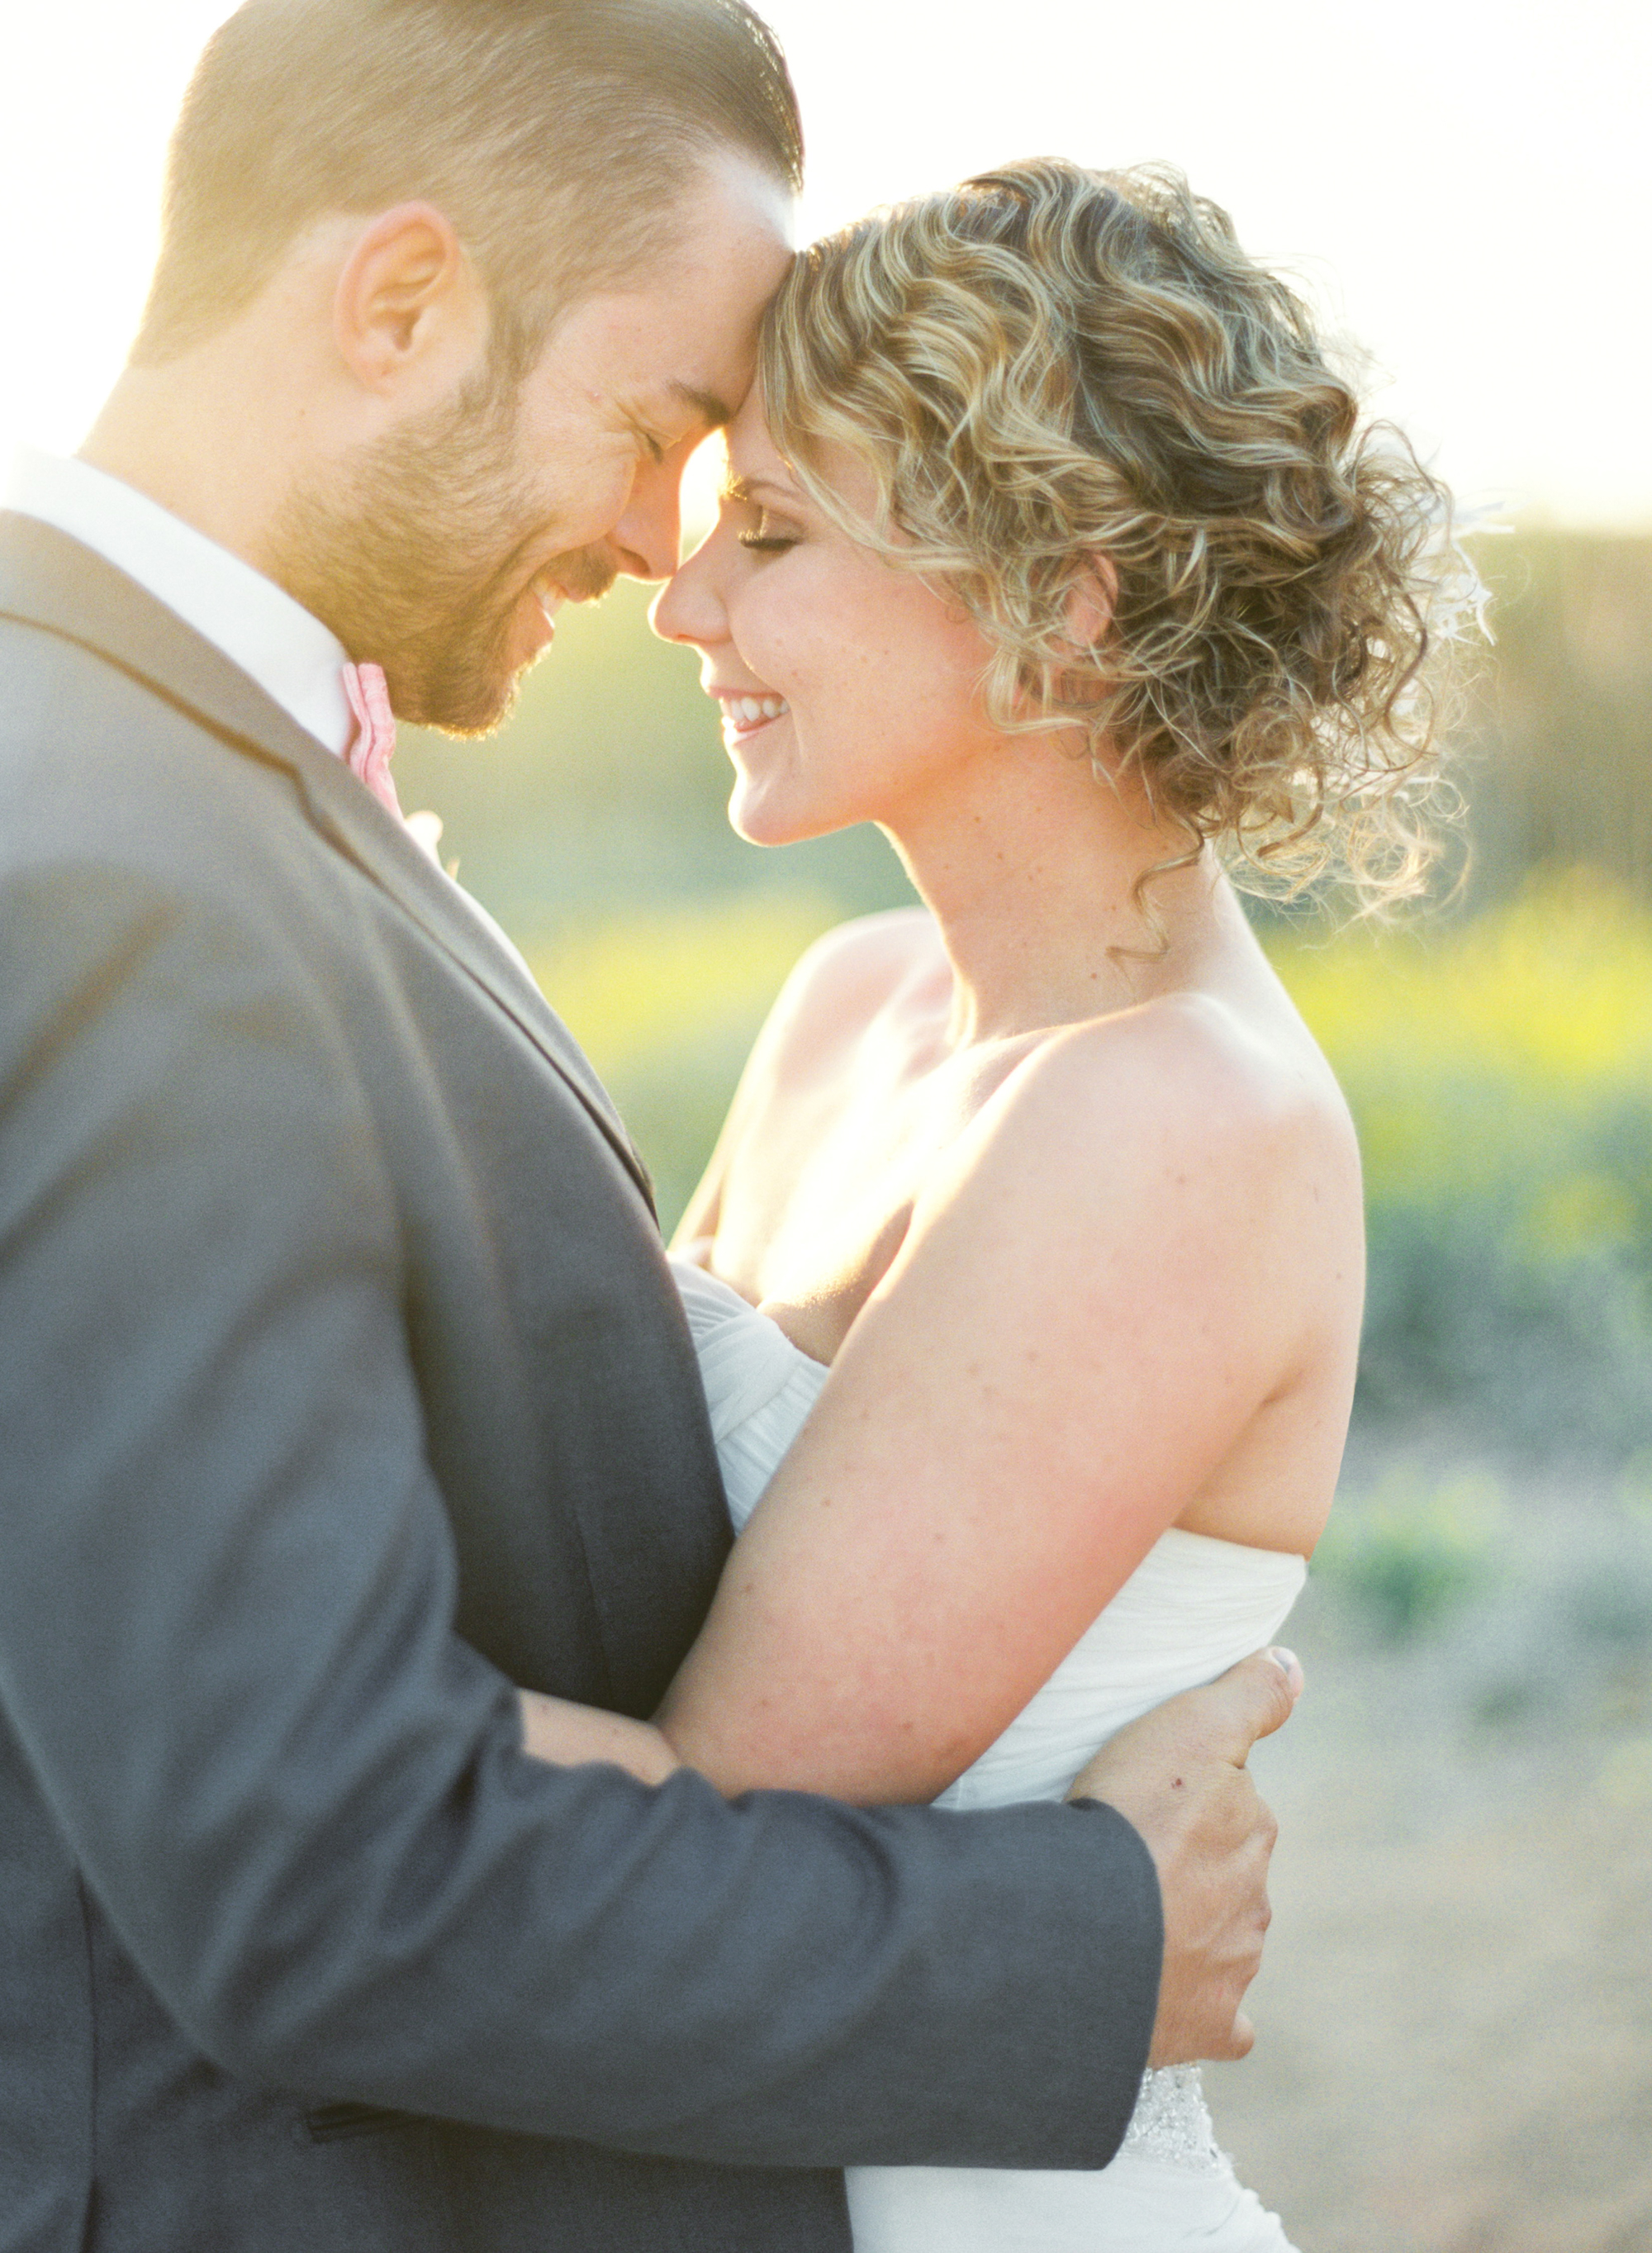 Bride & groom smiling at each other and cuddling